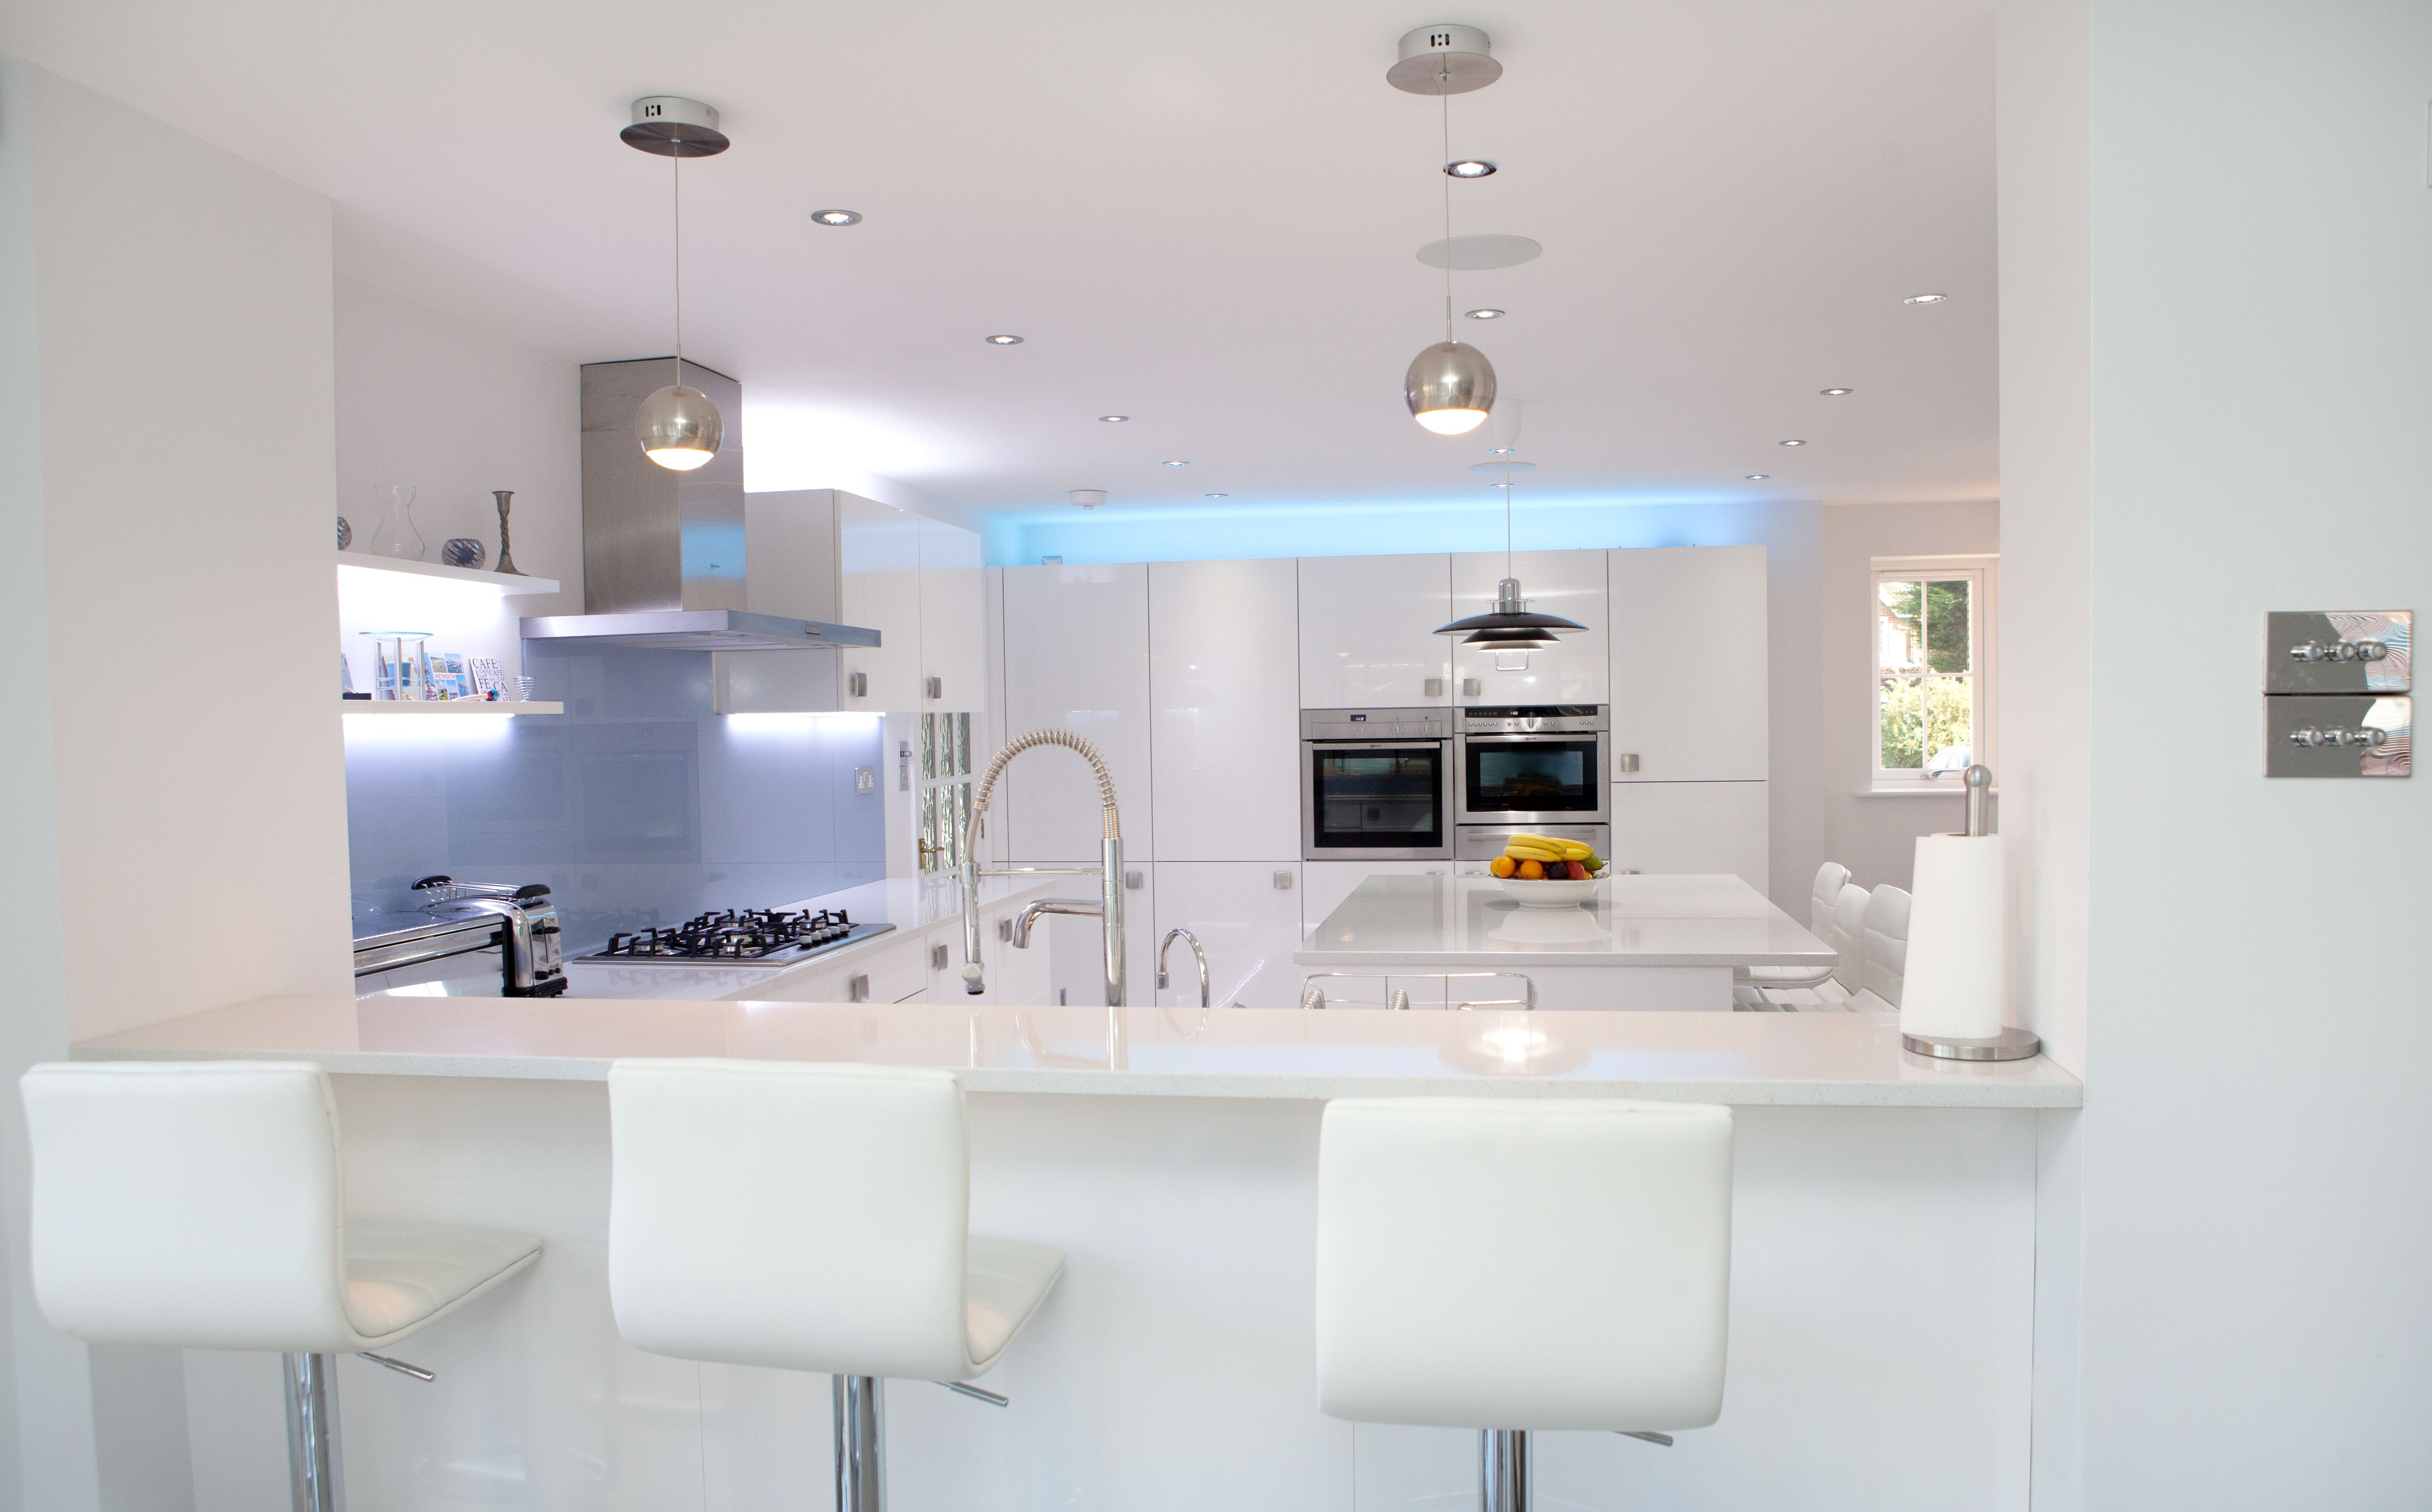 Nolte Kitchens | Glass splashbacks, White gloss kitchen and Kitchens